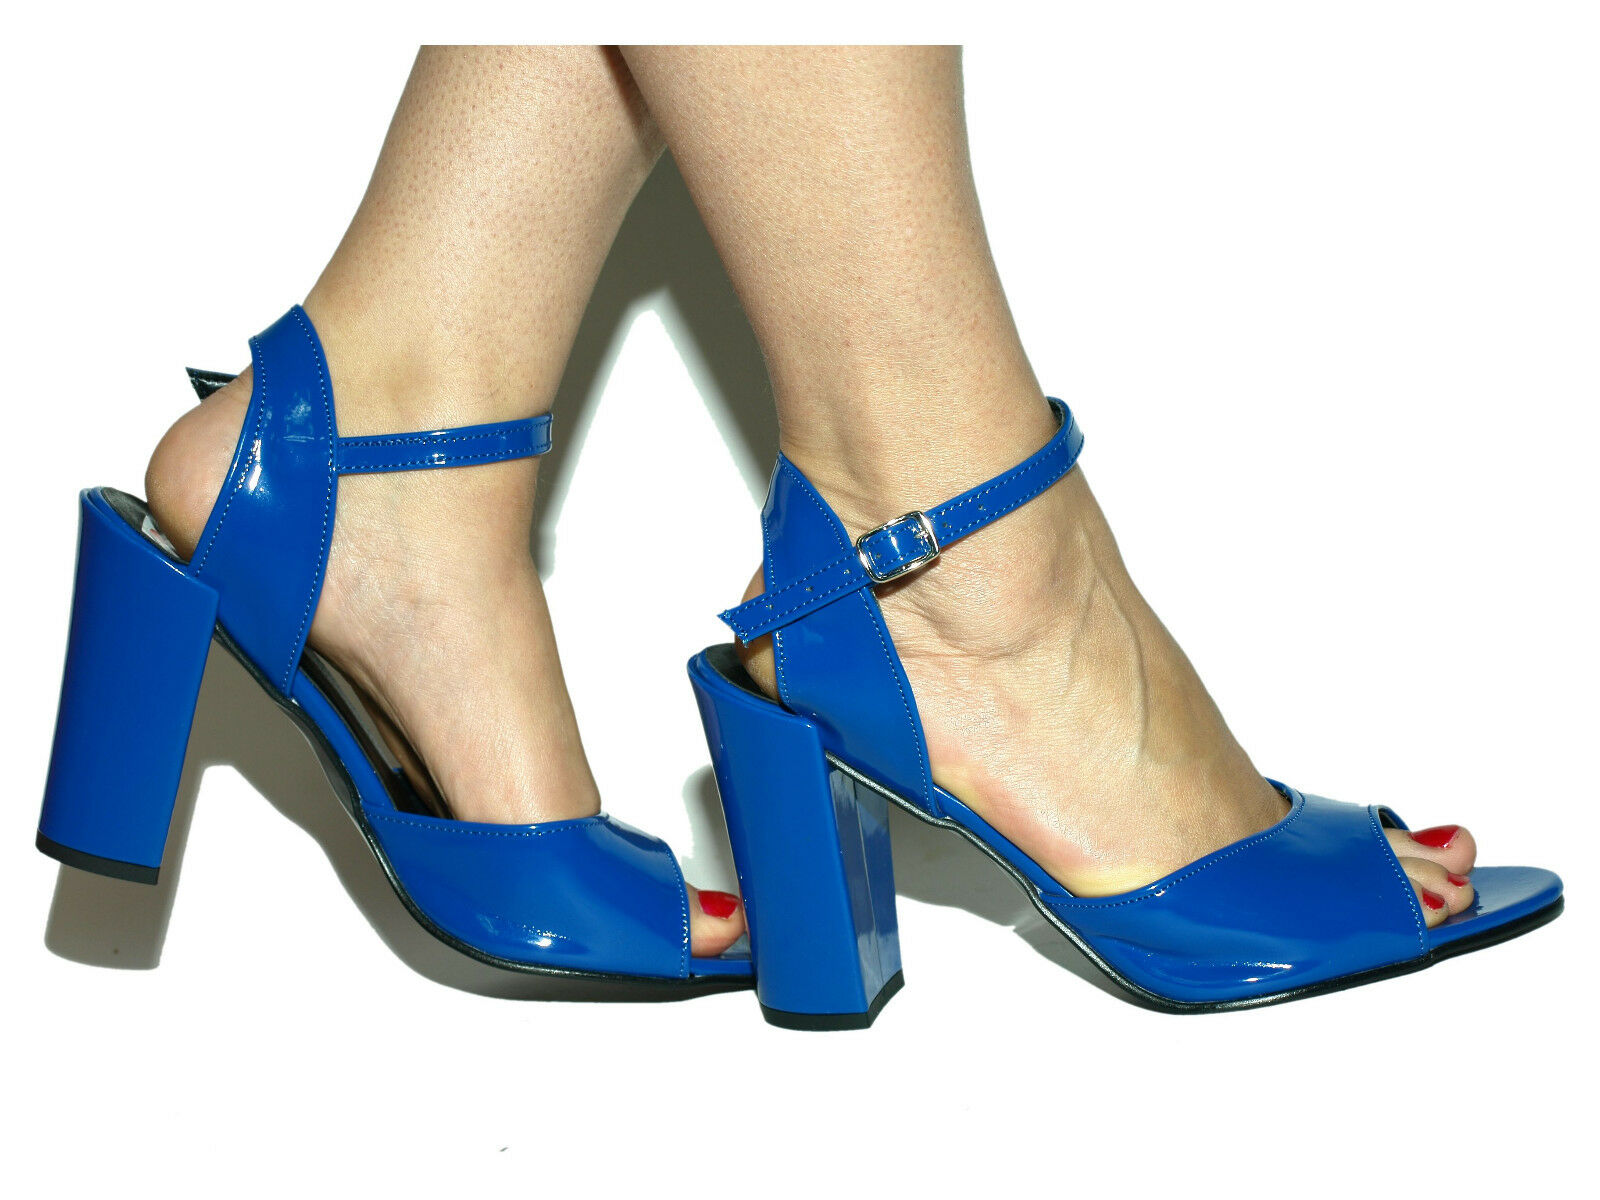 Promotion   Pumps sandalen blue 37 38 39 40 41 42 43 44 45 46 47  Poland